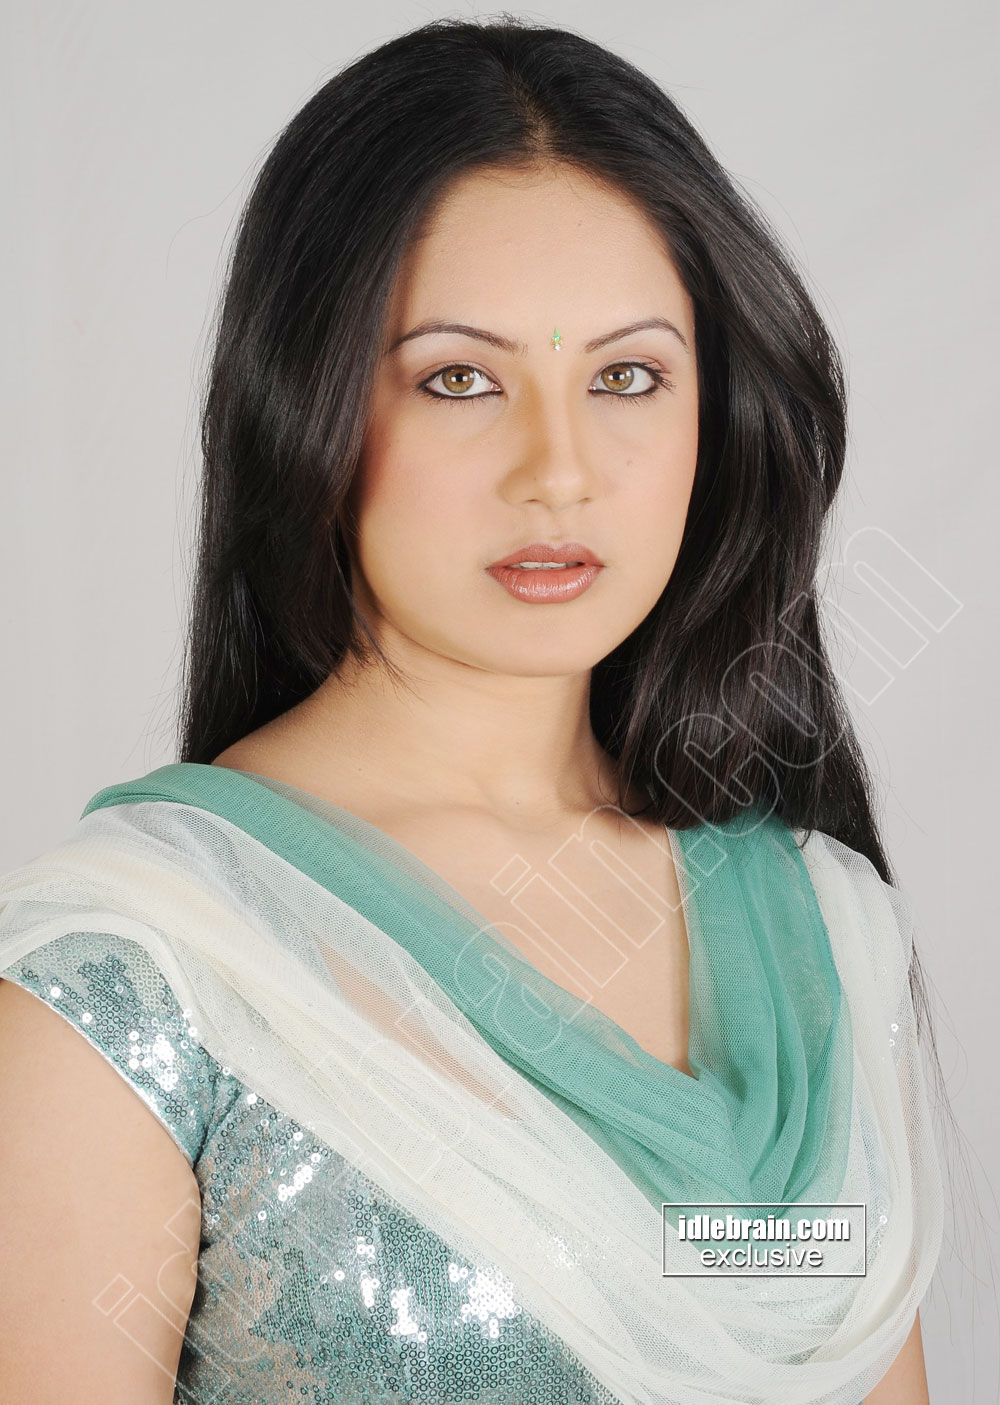 Pooja Bose - Pooja Bose photo gallery - Telugu cinema actress